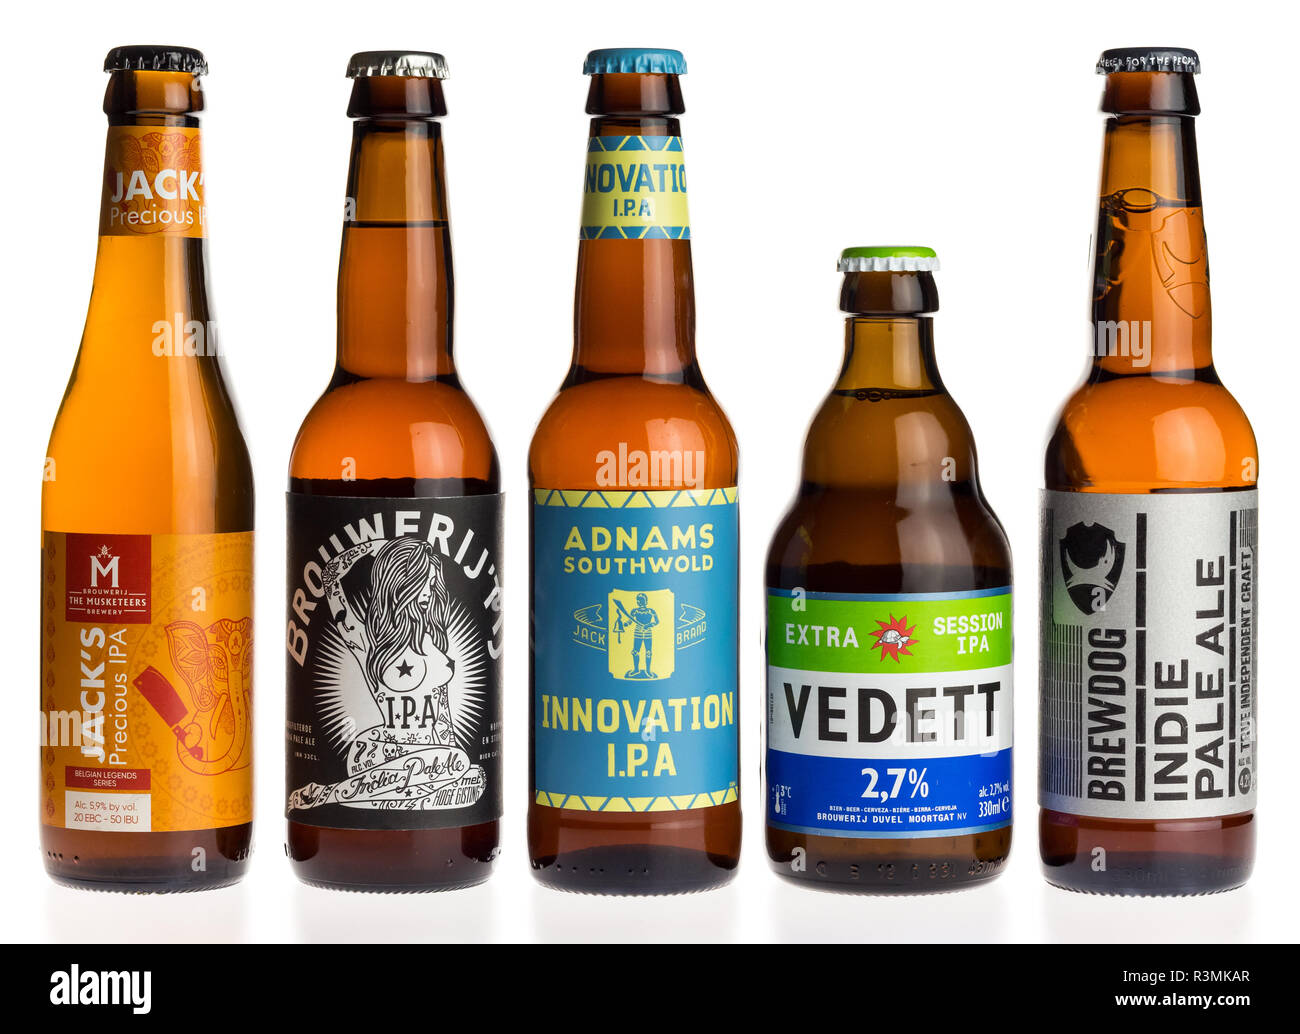 Collection of Jacks, Adnams, Vedett and Brewdog Indian Pale Ale beers isolated on a white background - Stock Image